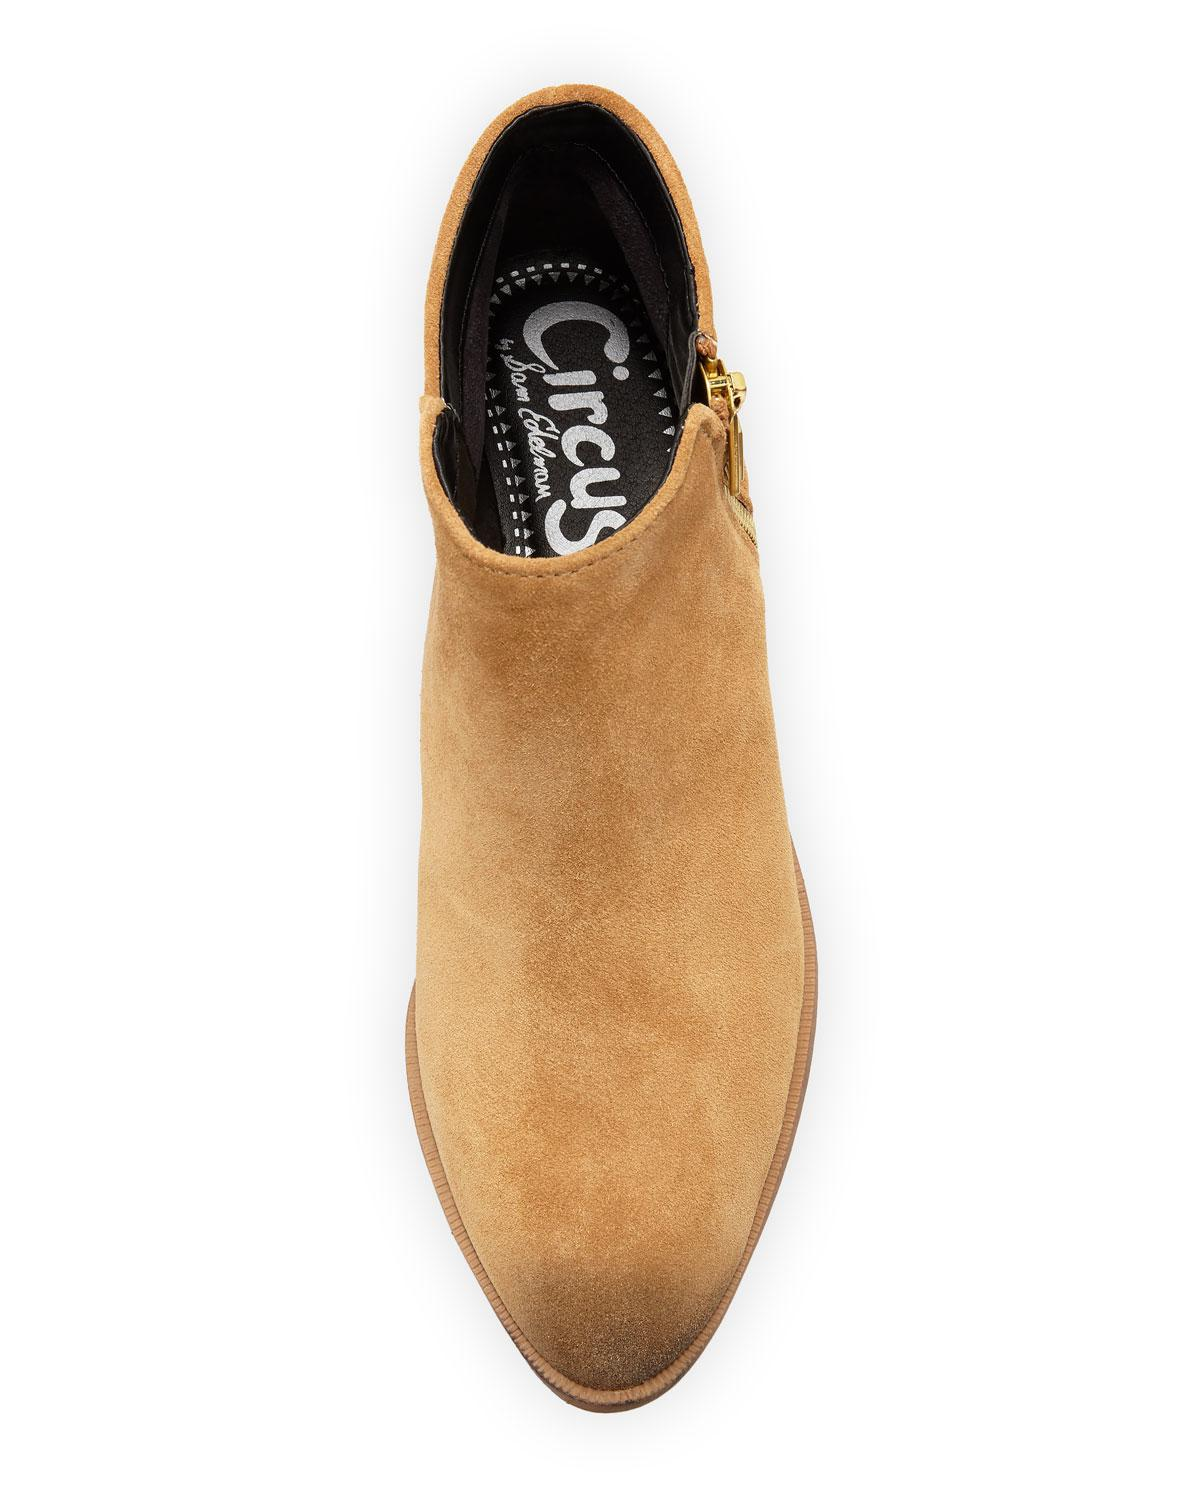 c70a86a8f Lyst - Circus by Sam Edelman Holt Velour Suede Spike Bootie in Natural